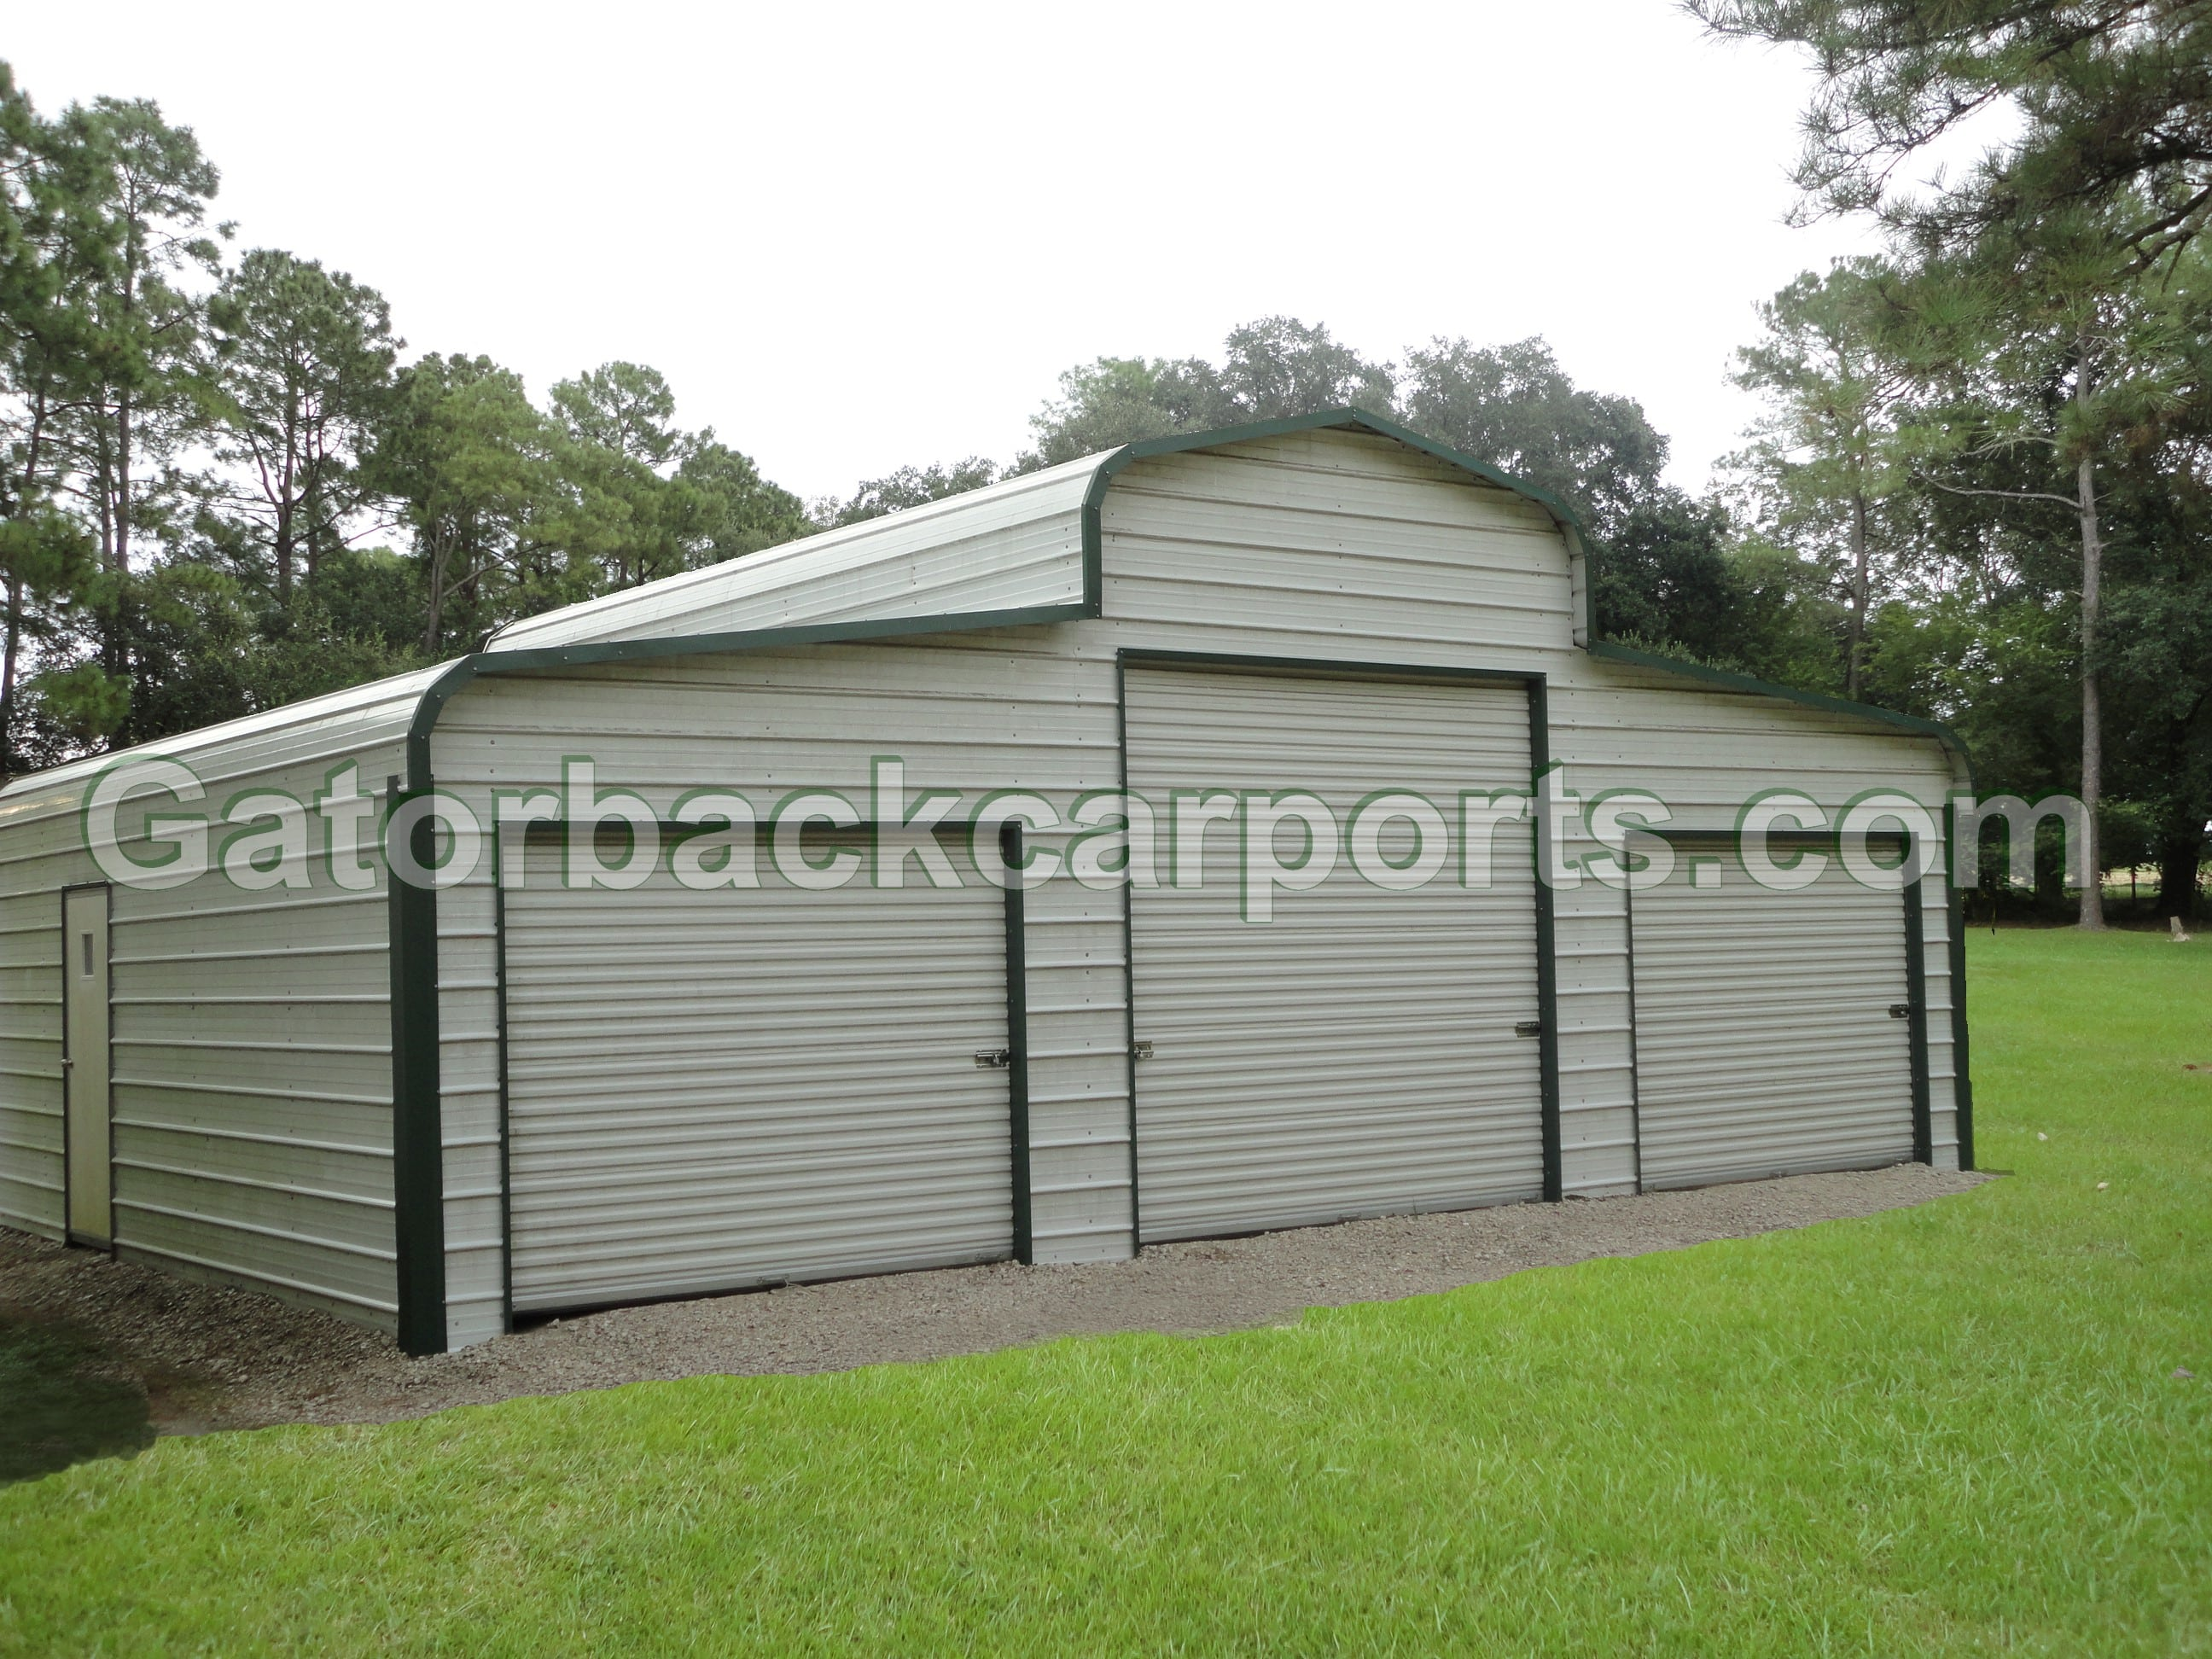 Lean to carports lean to garages gatorback carports for 14 wide garage door